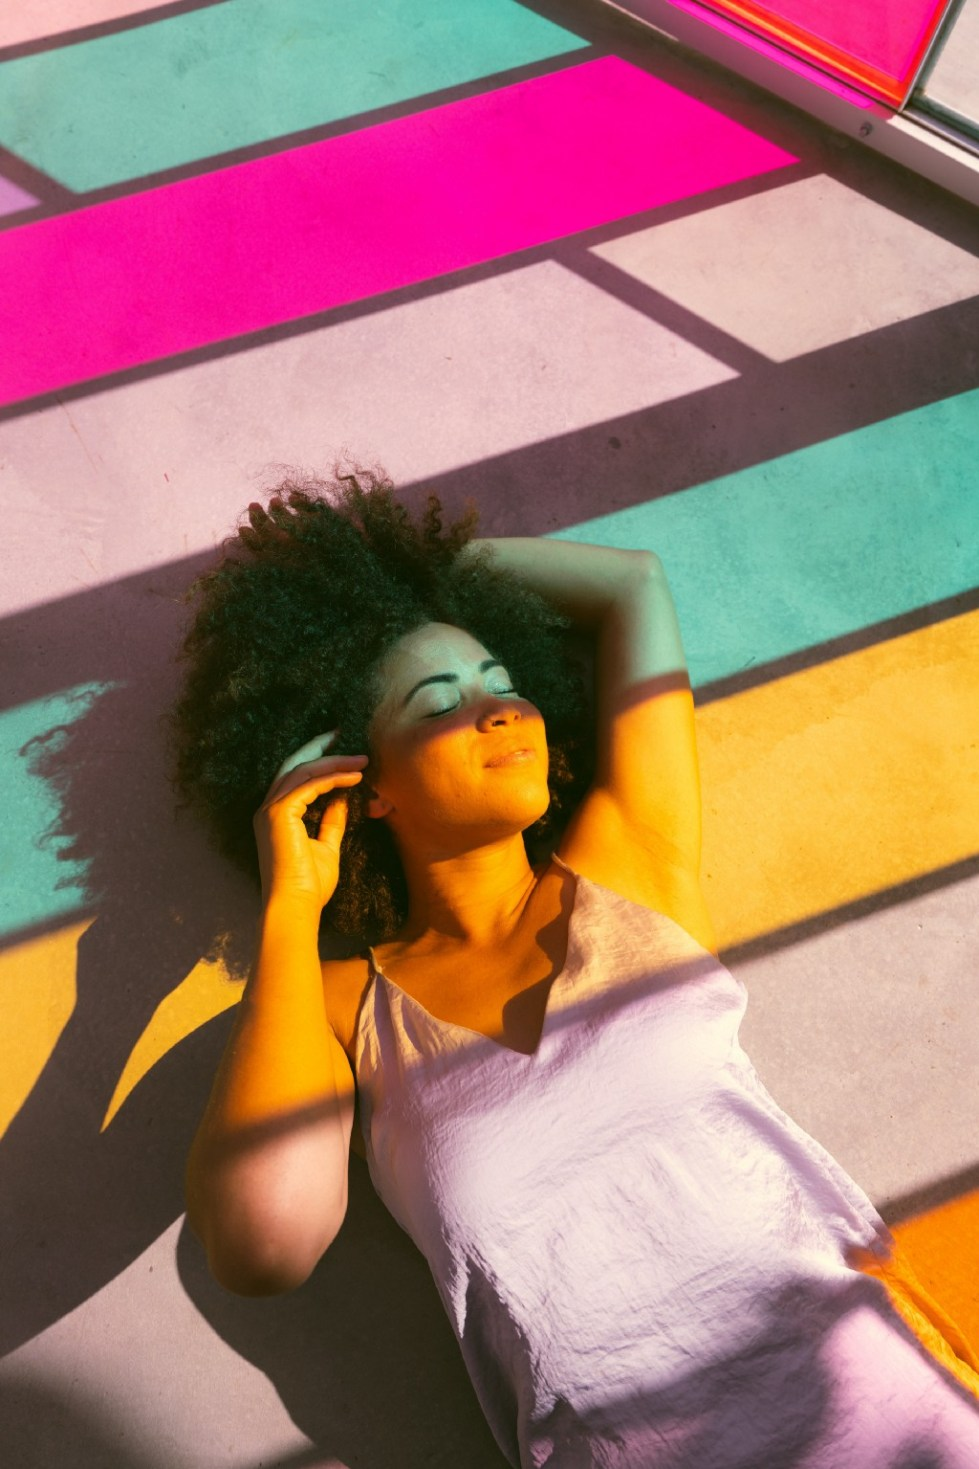 A calm and relaxed woman laying down with colored reflective light shining down on her